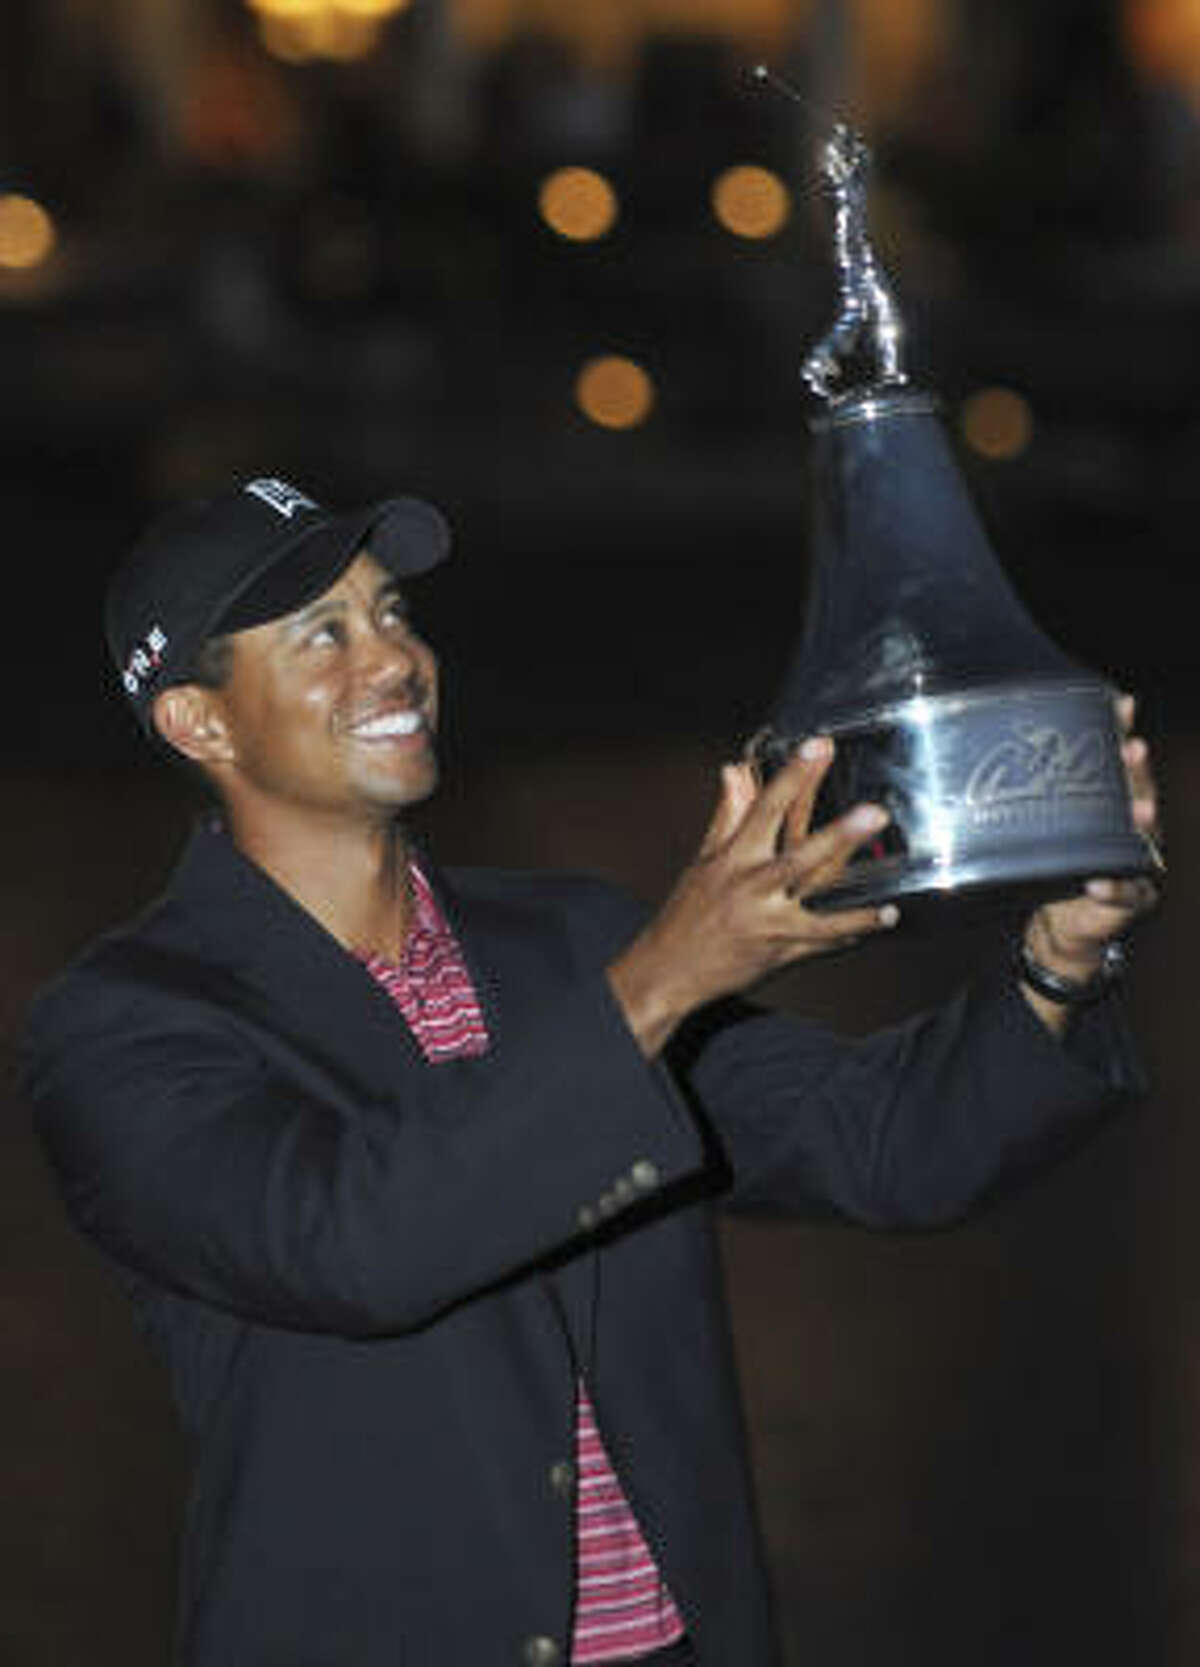 Tiger Woods lifts the trophy for winning the Arnold Palmer Invitational at Bay Hill in Orlando, Fla. Woods closed with a 3-under 67 for a one-shot victory over Sean O'Hair.